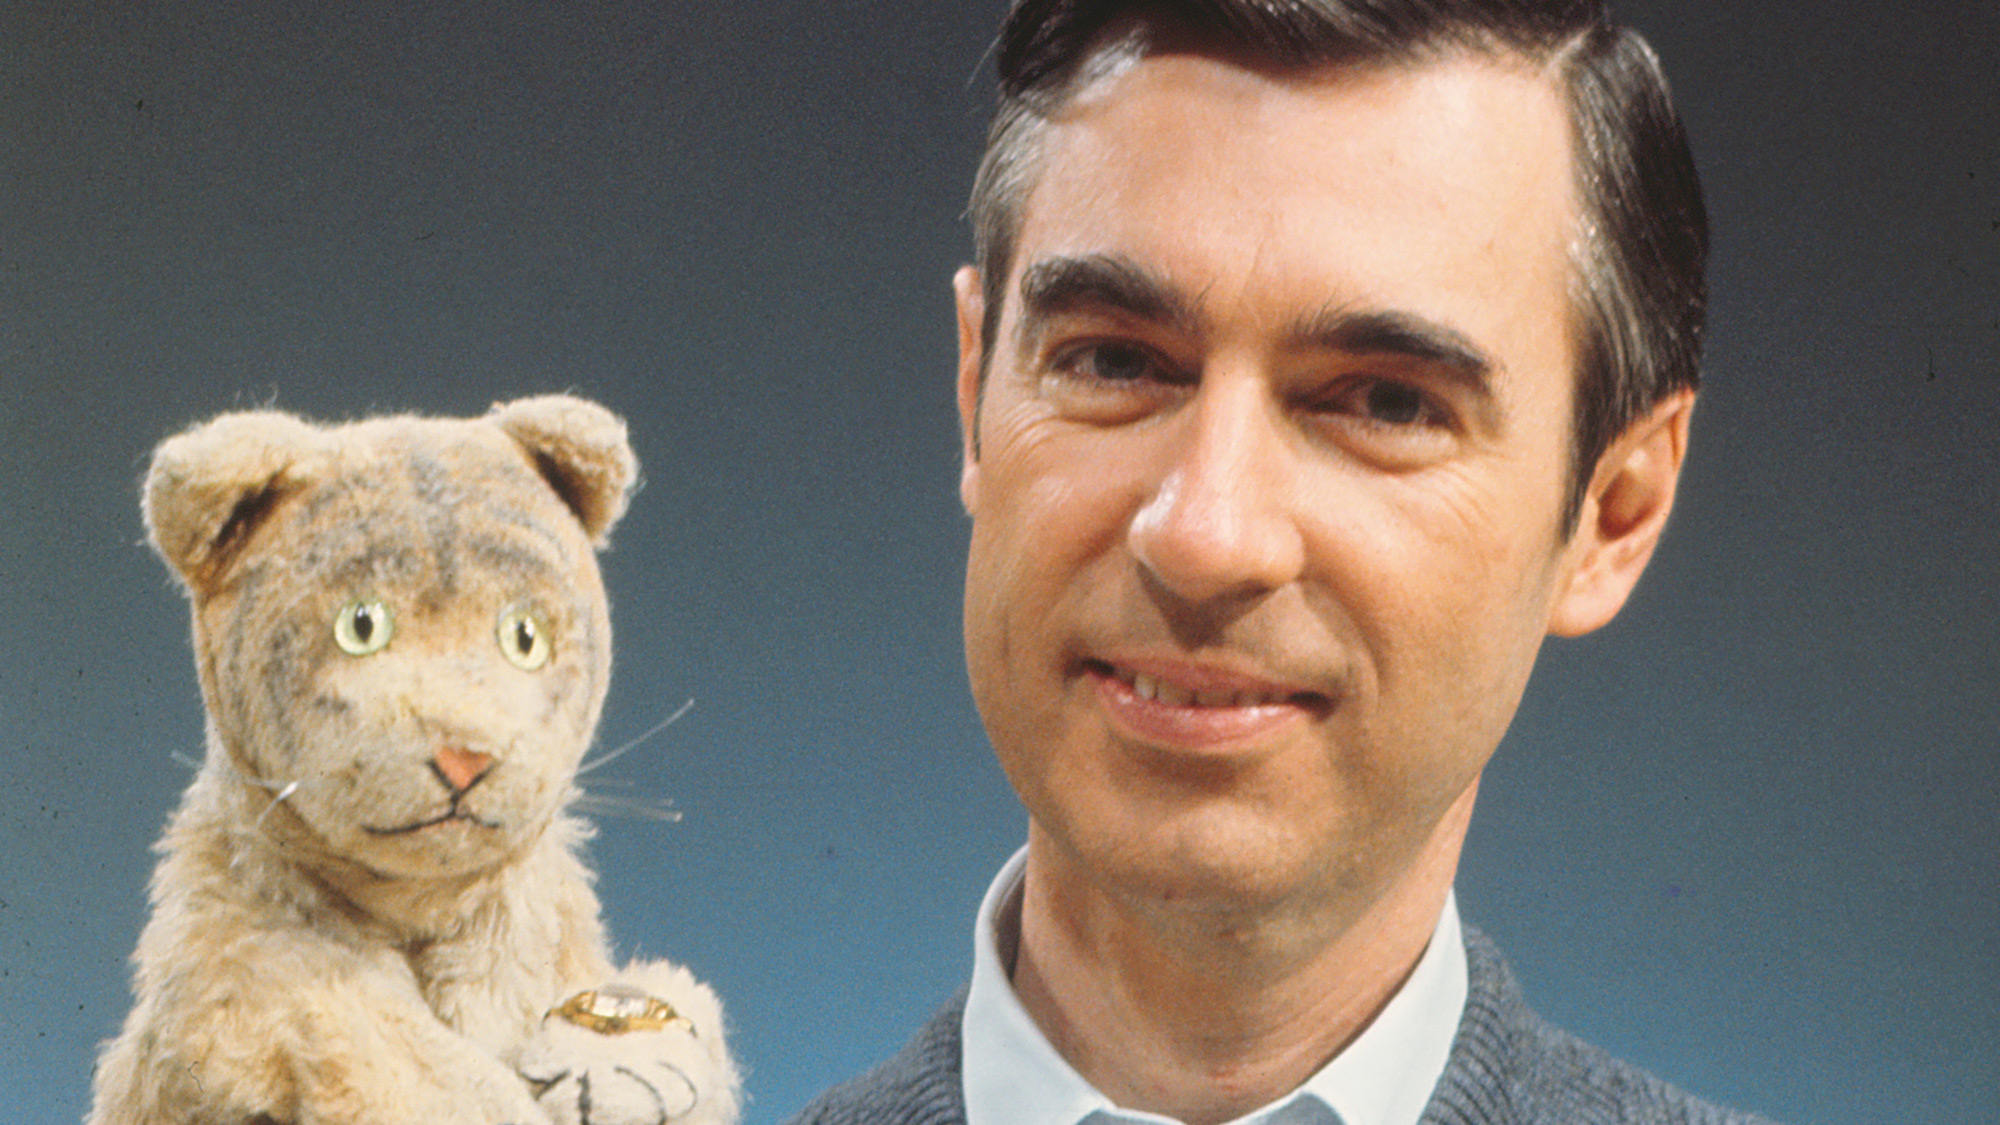 The Fred Rogers documentary Won't You Be My Neighbor feels radically subversive